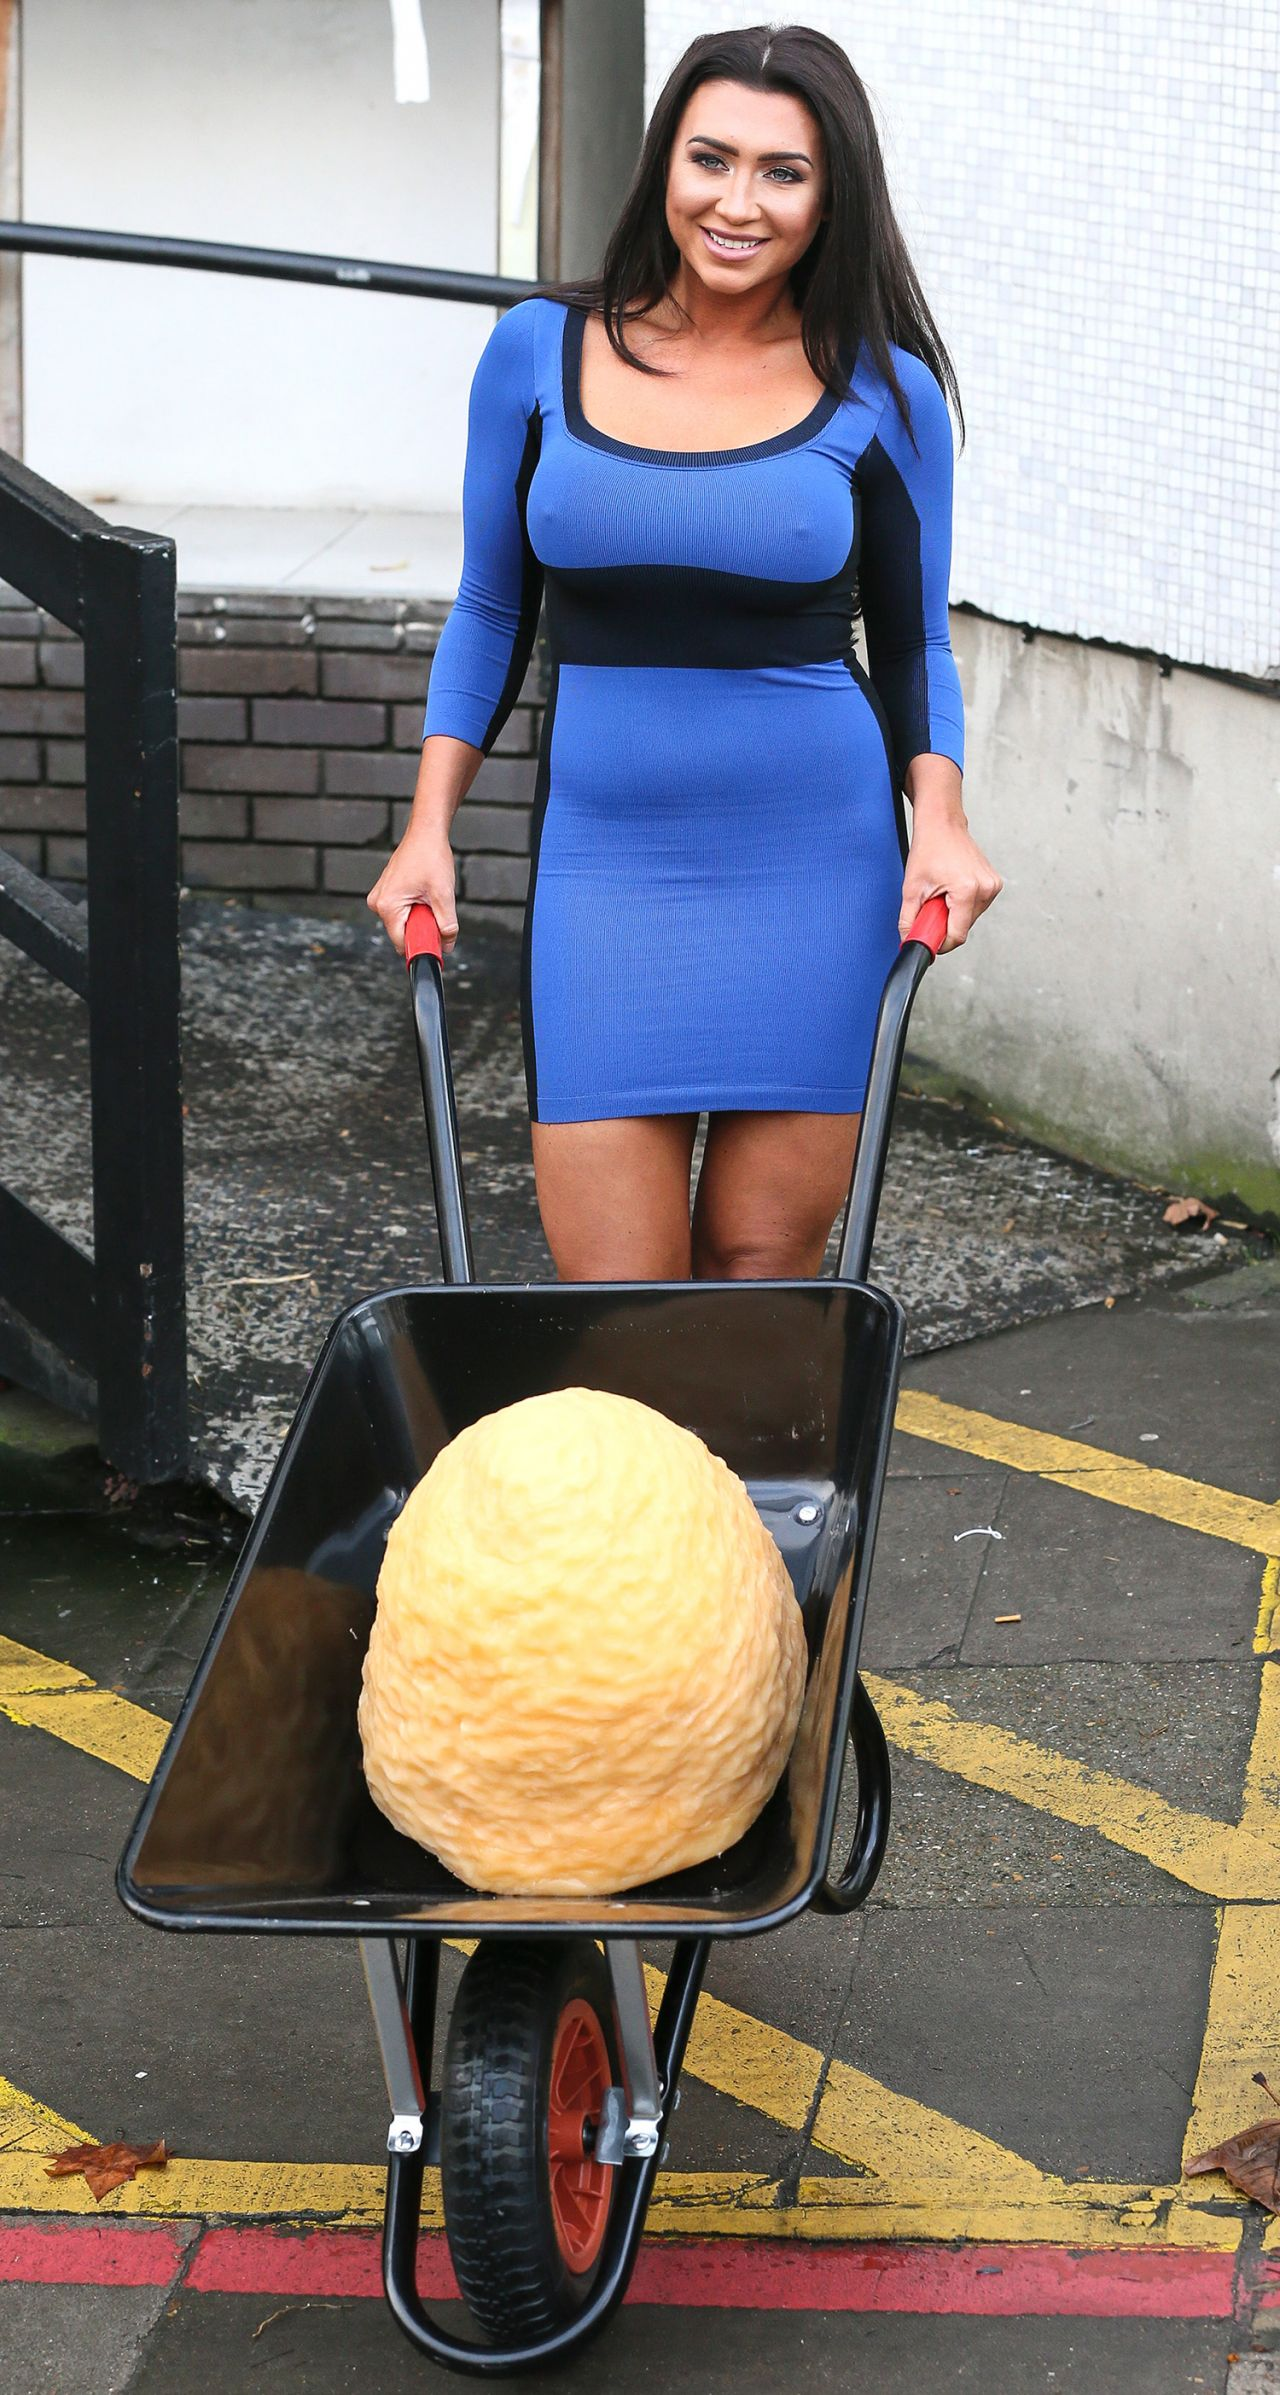 Lauren Goodger In A Blue One Piece Dress 1 4 2016